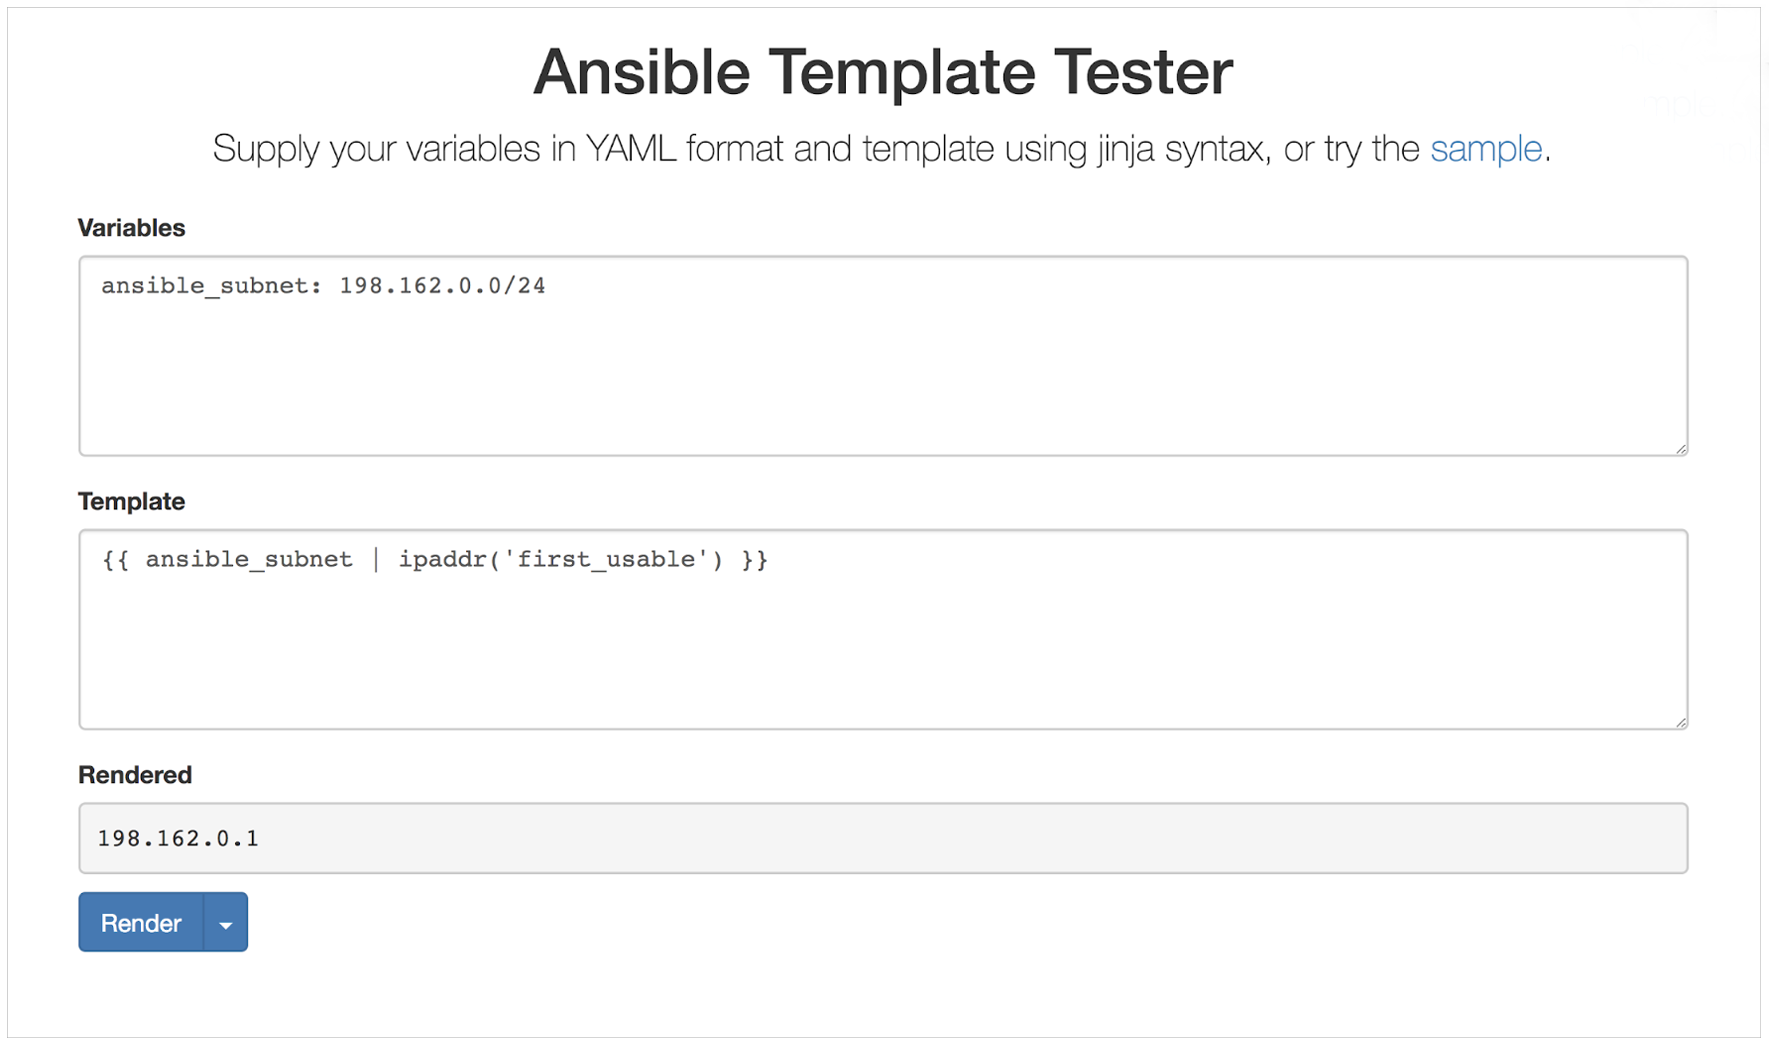 Infoblox-Roles-Deep-Dive-Ansible-Template-Tester